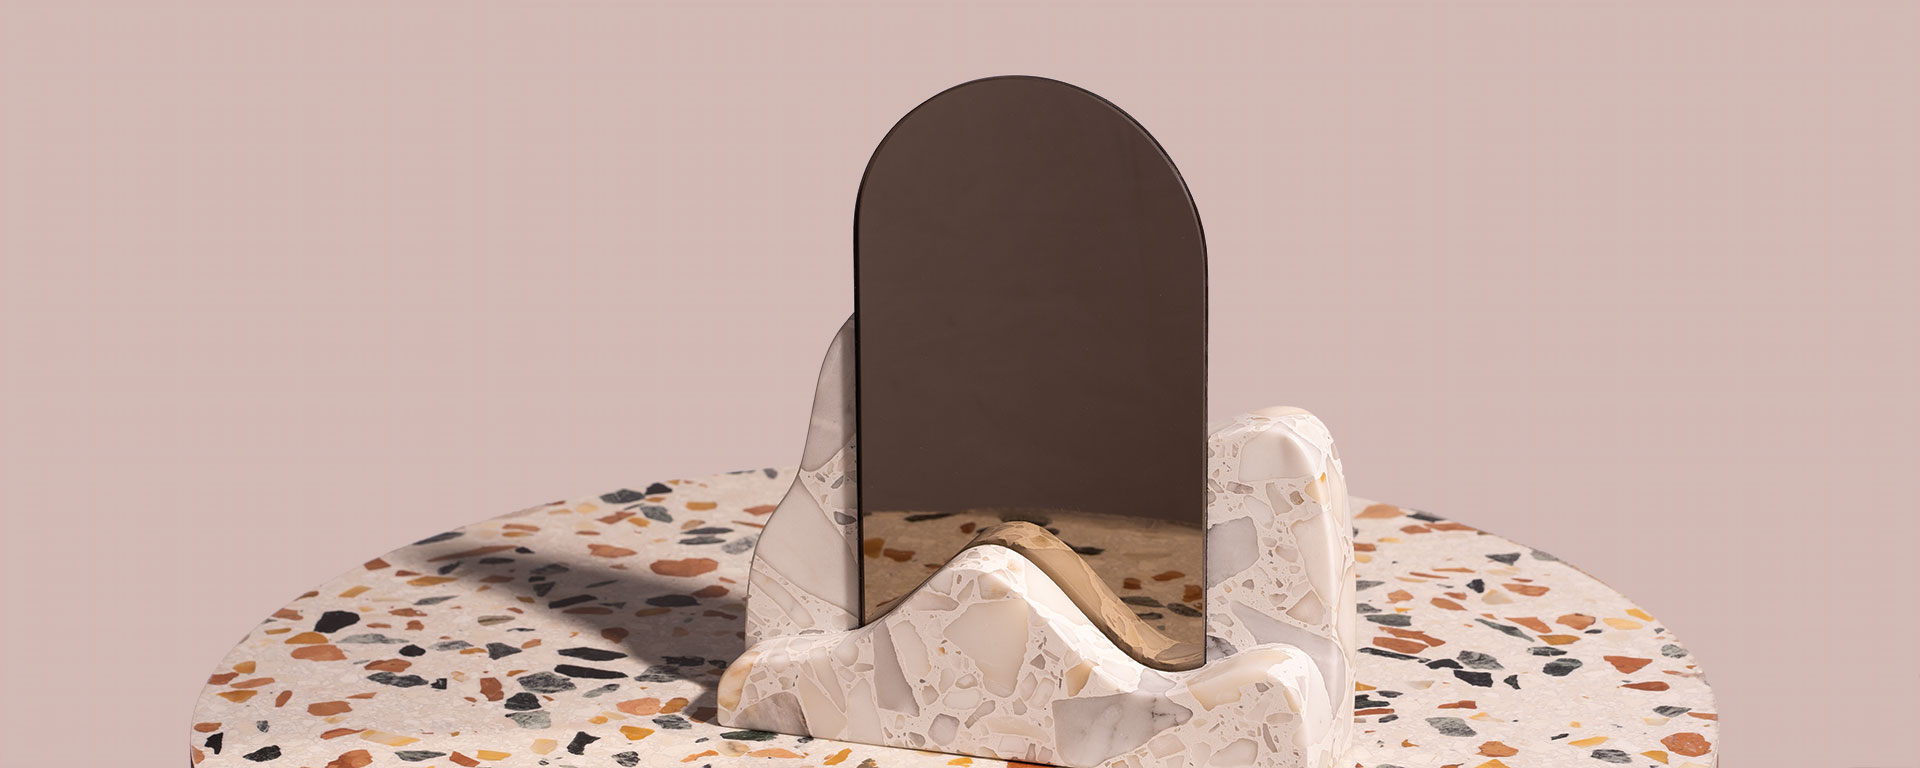 dune-marble-mirror-charlotte-taylor-1920x768